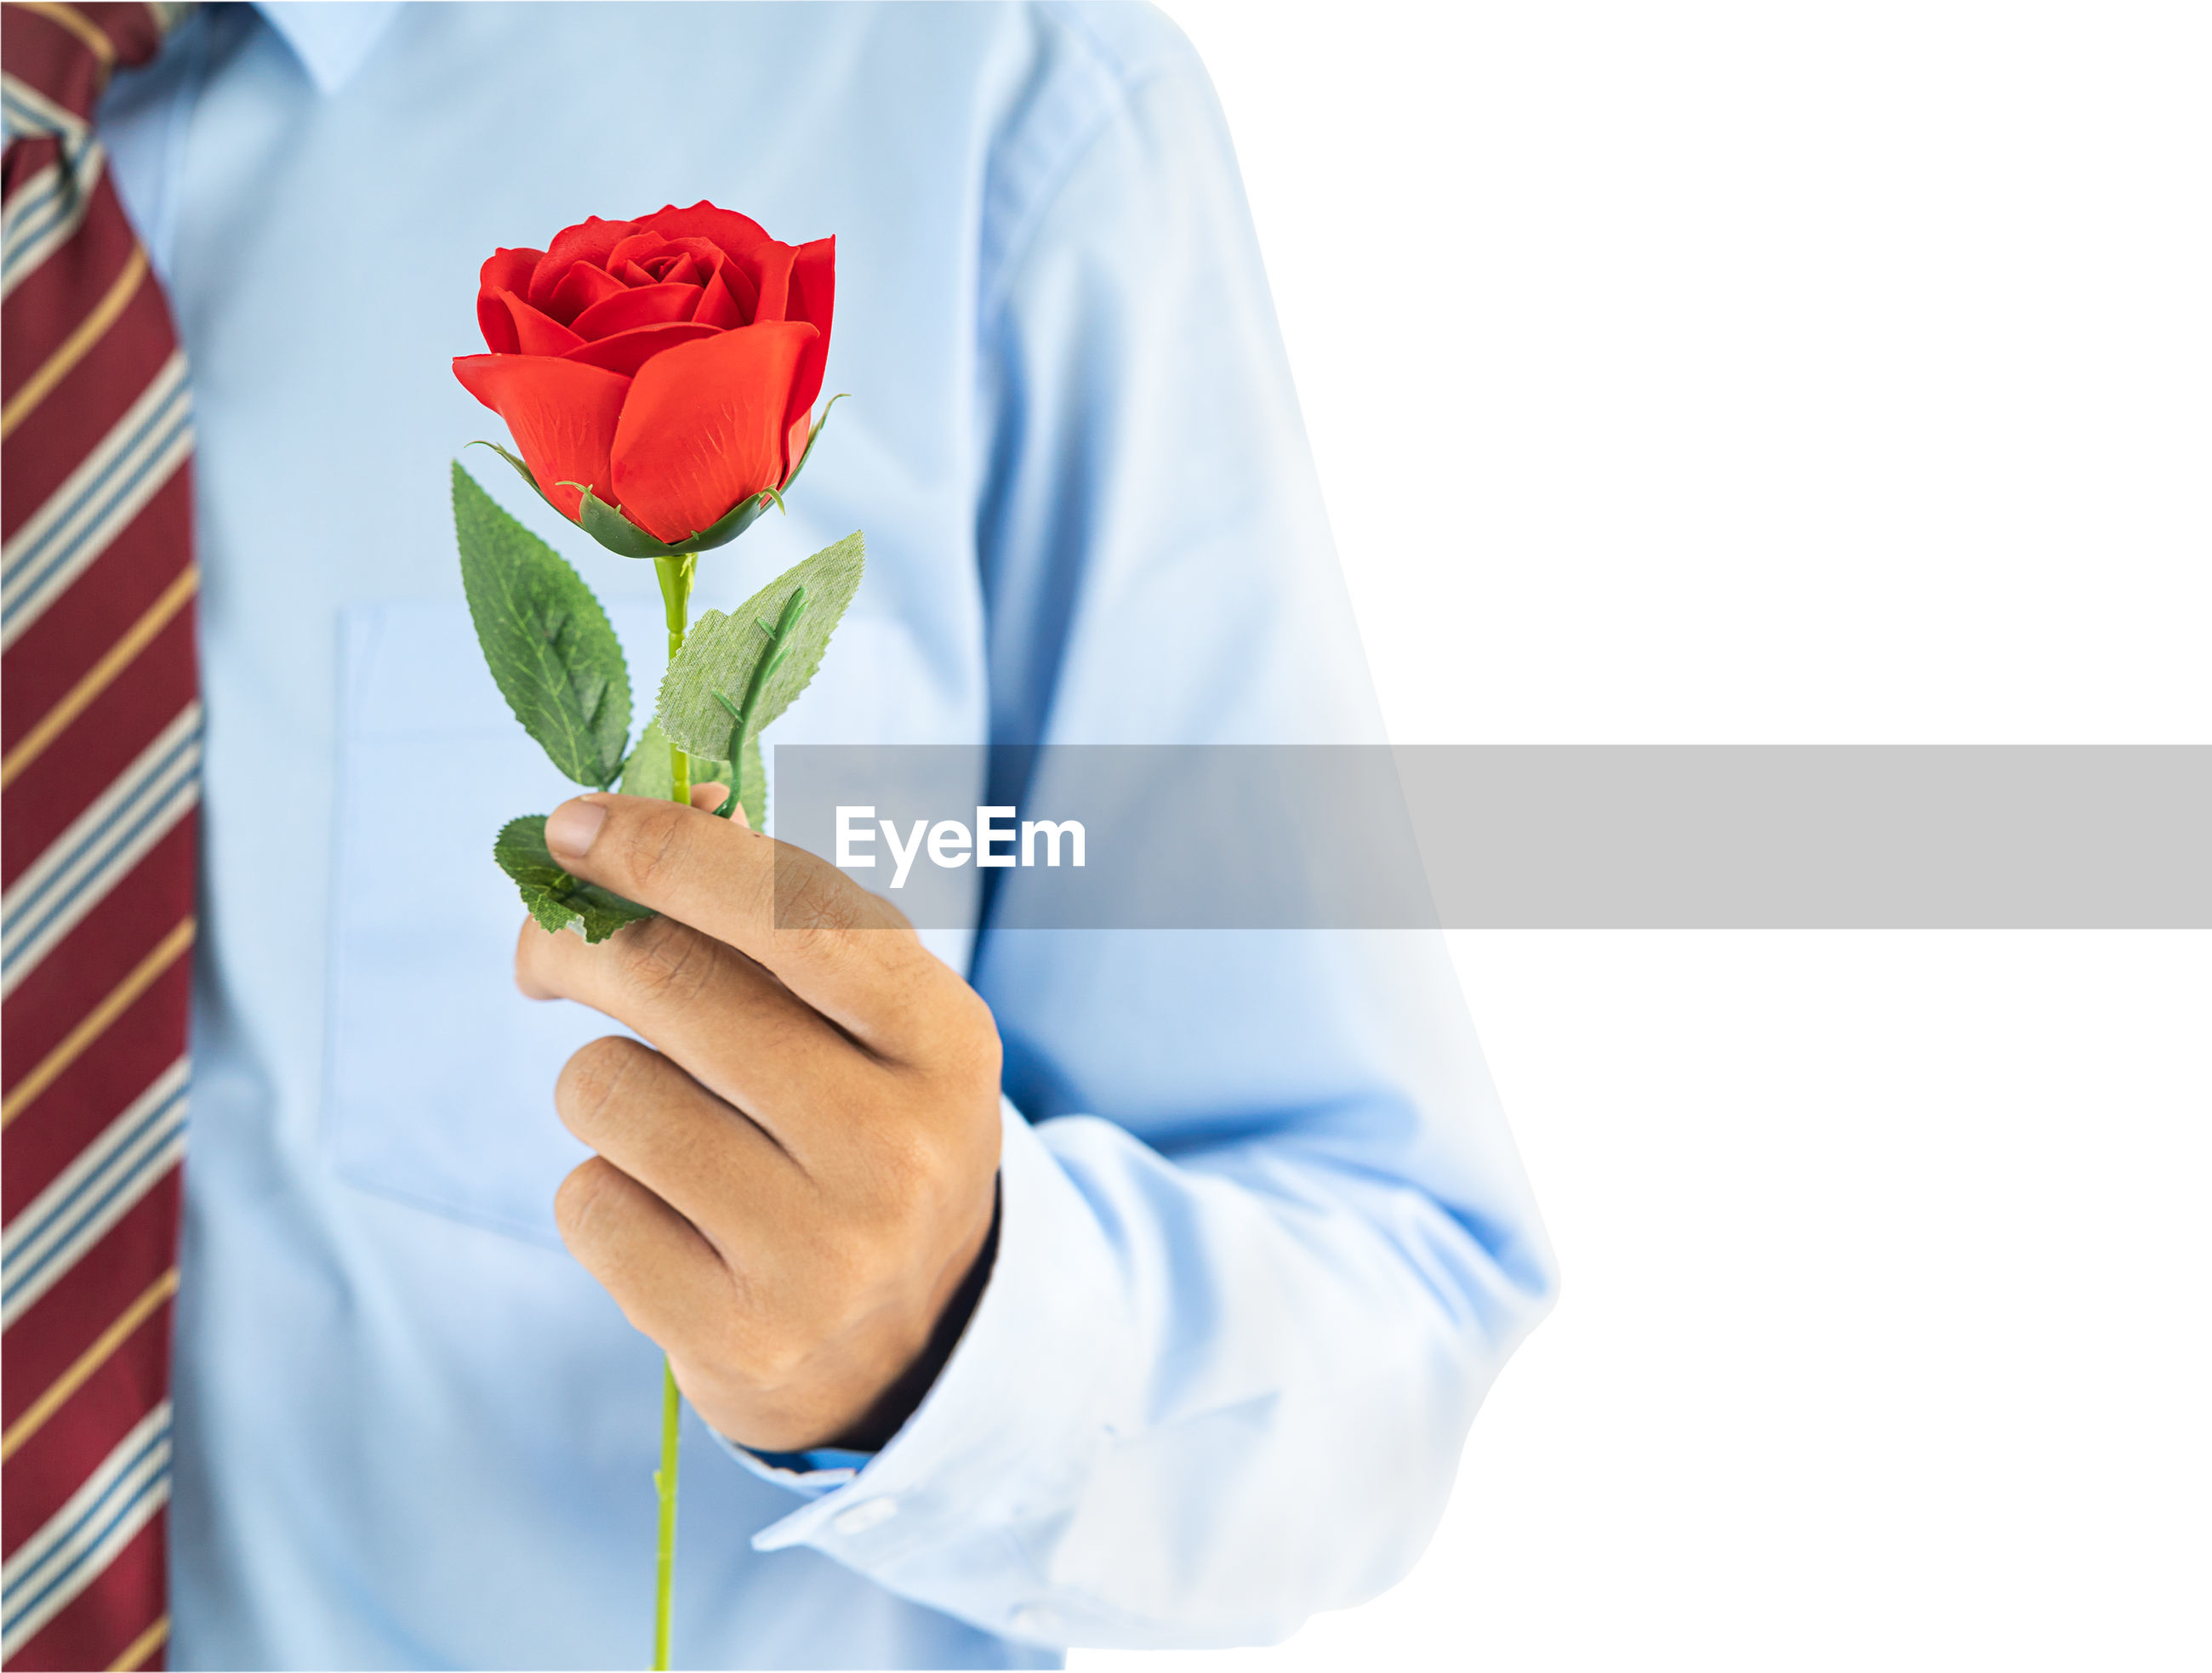 Midsection of man holding red rose against white roses